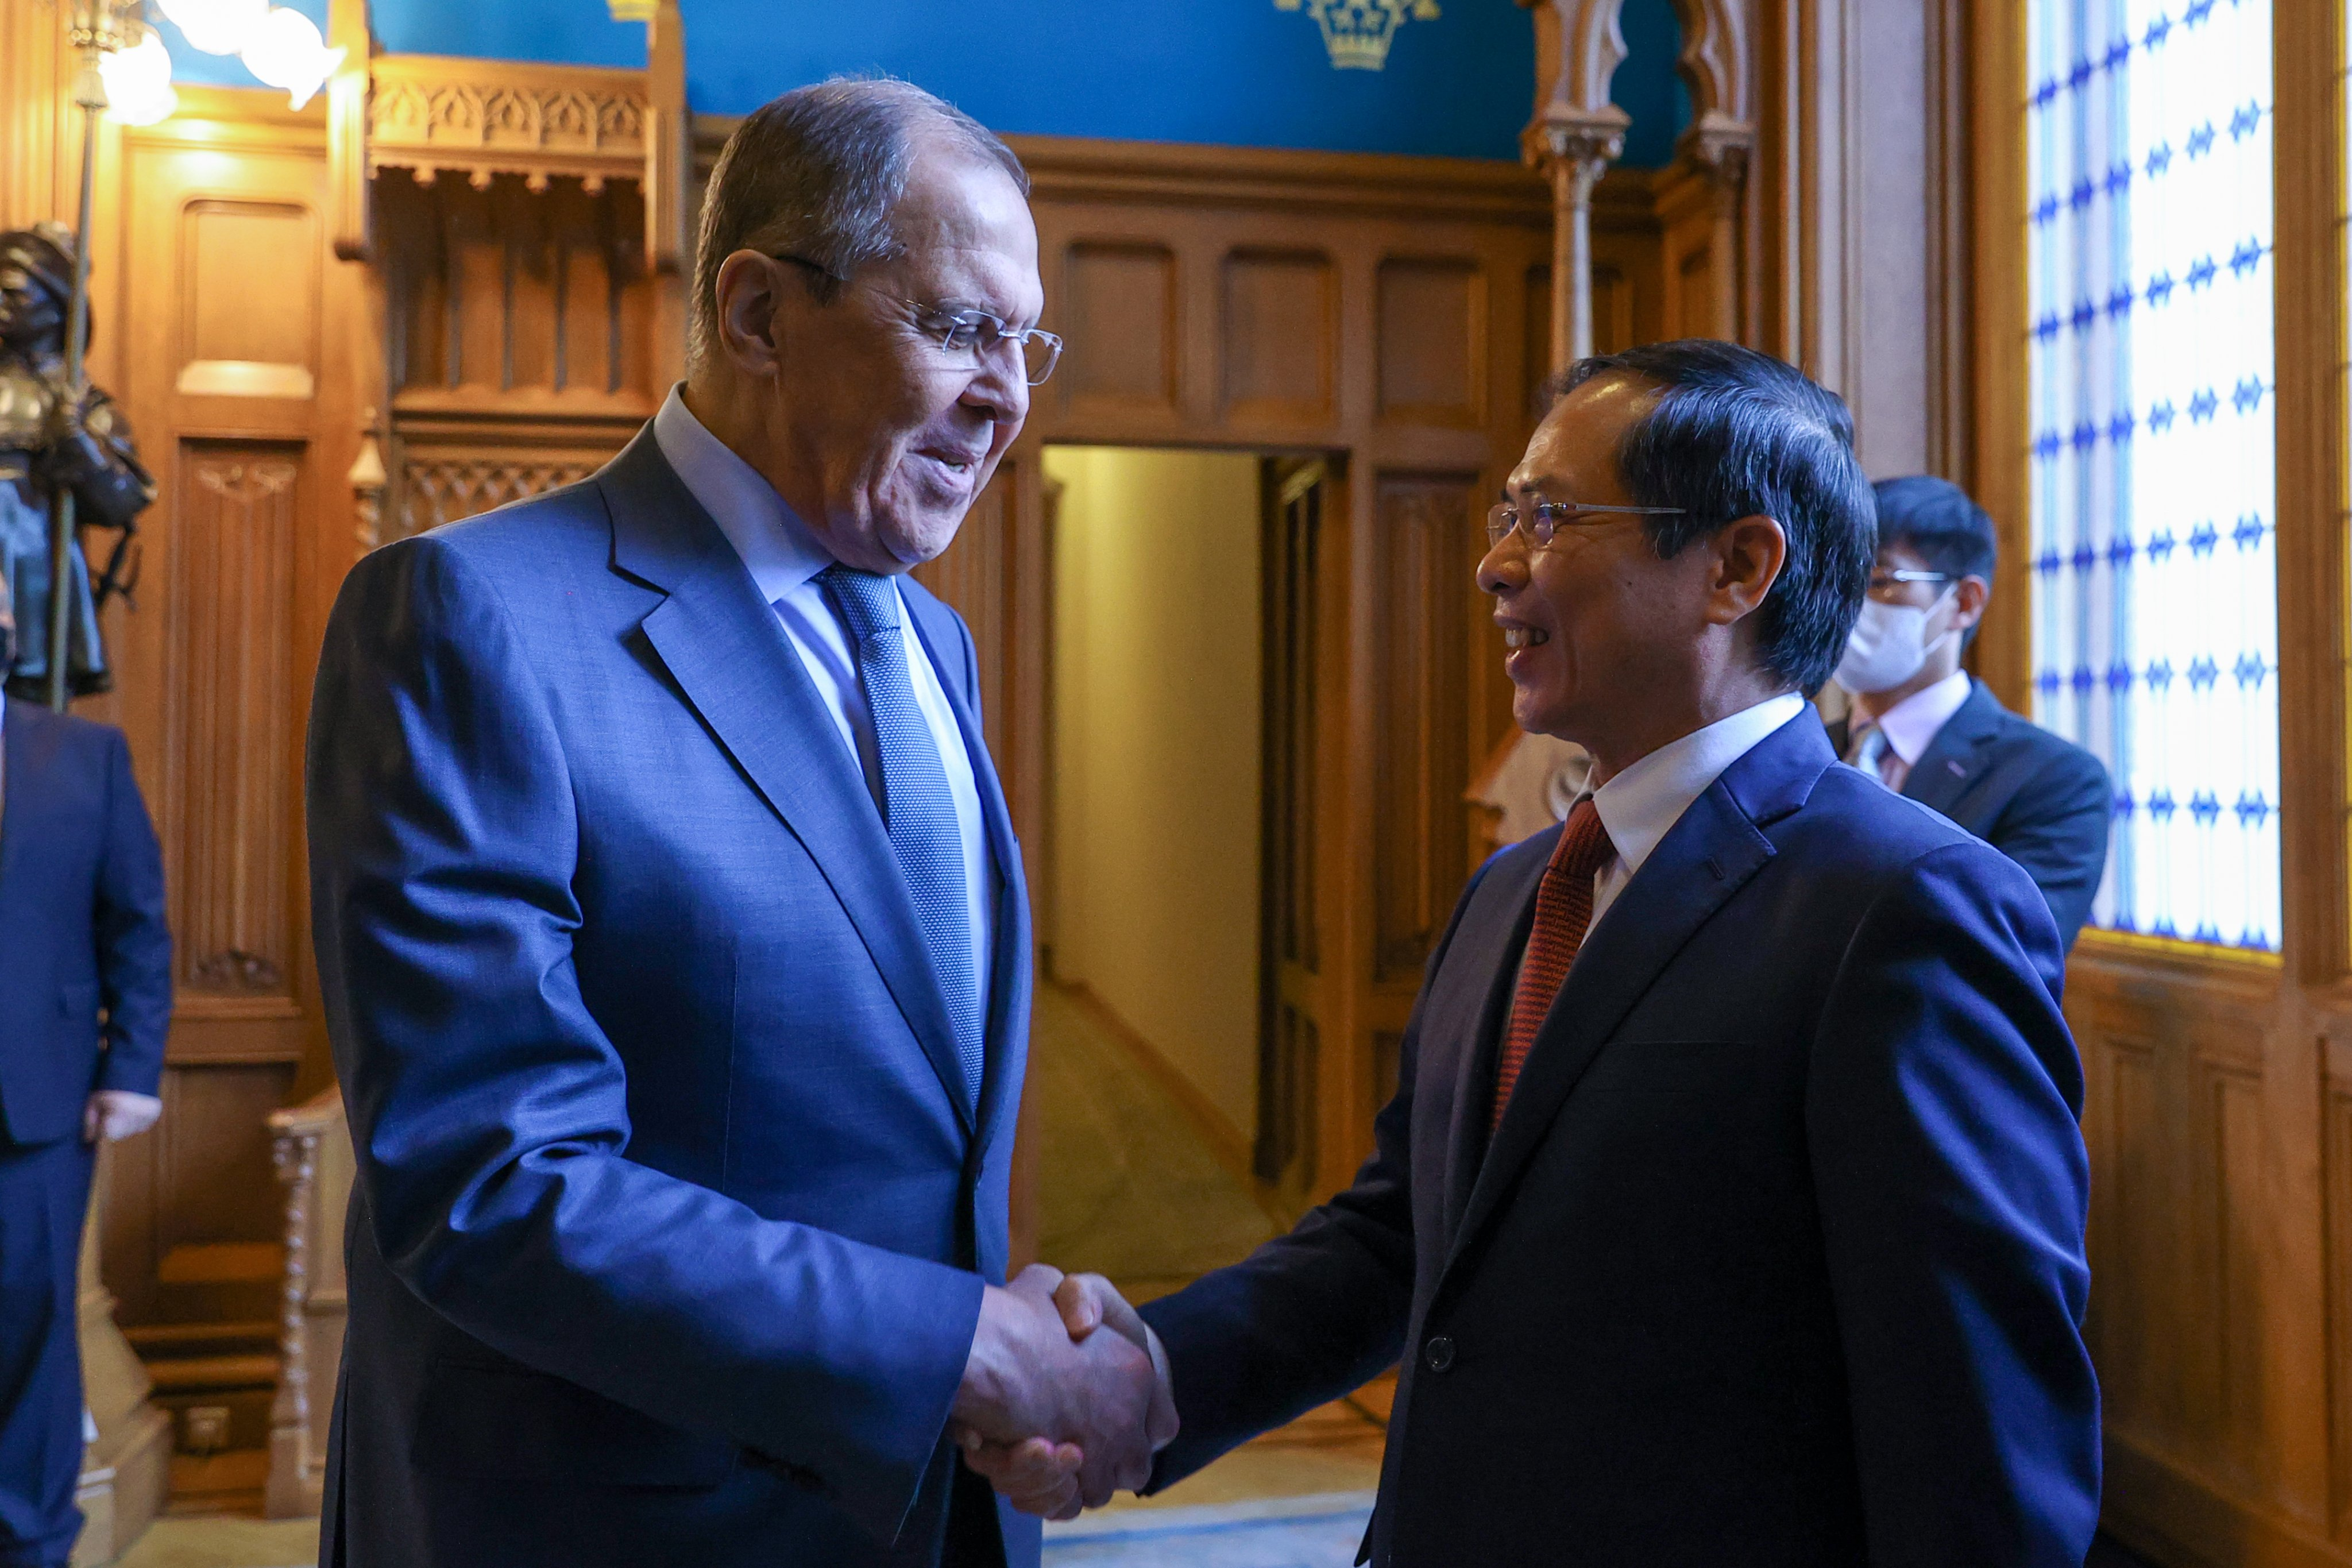 Vietnam seeks Russia's support in COVID-19 vaccine productiontechnology transfer